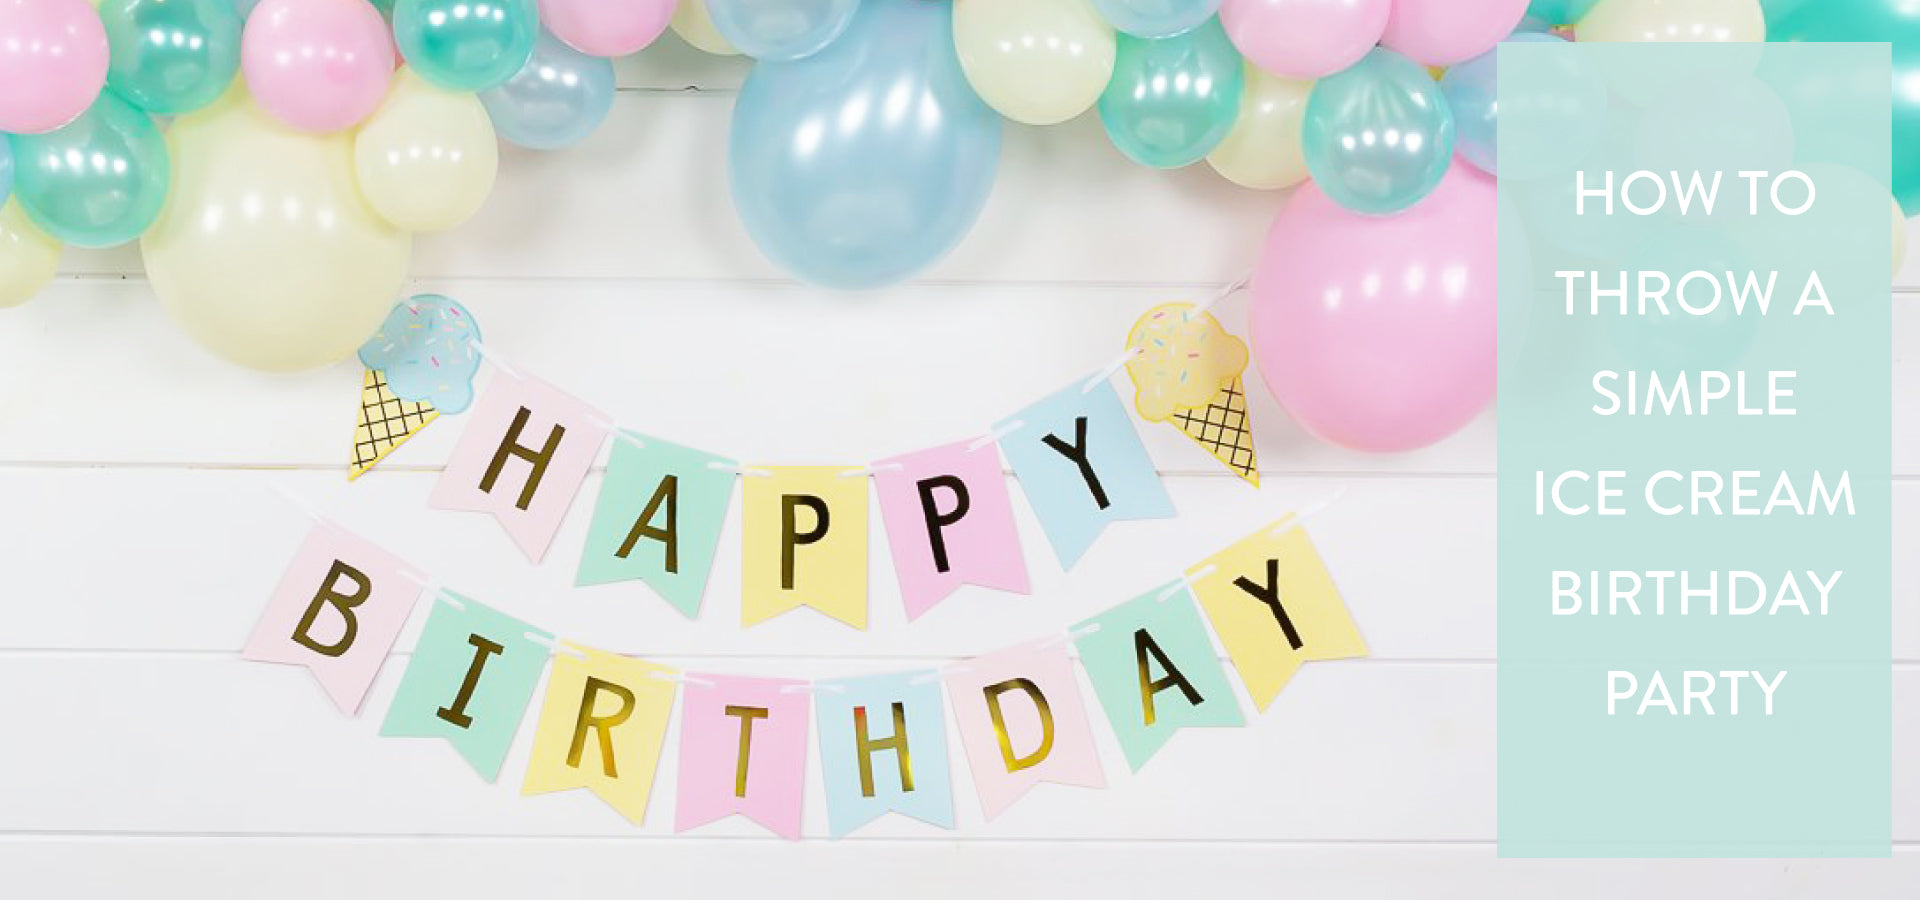 How to Throw a Simple Ice Cream Birthday Party | The Party Darling